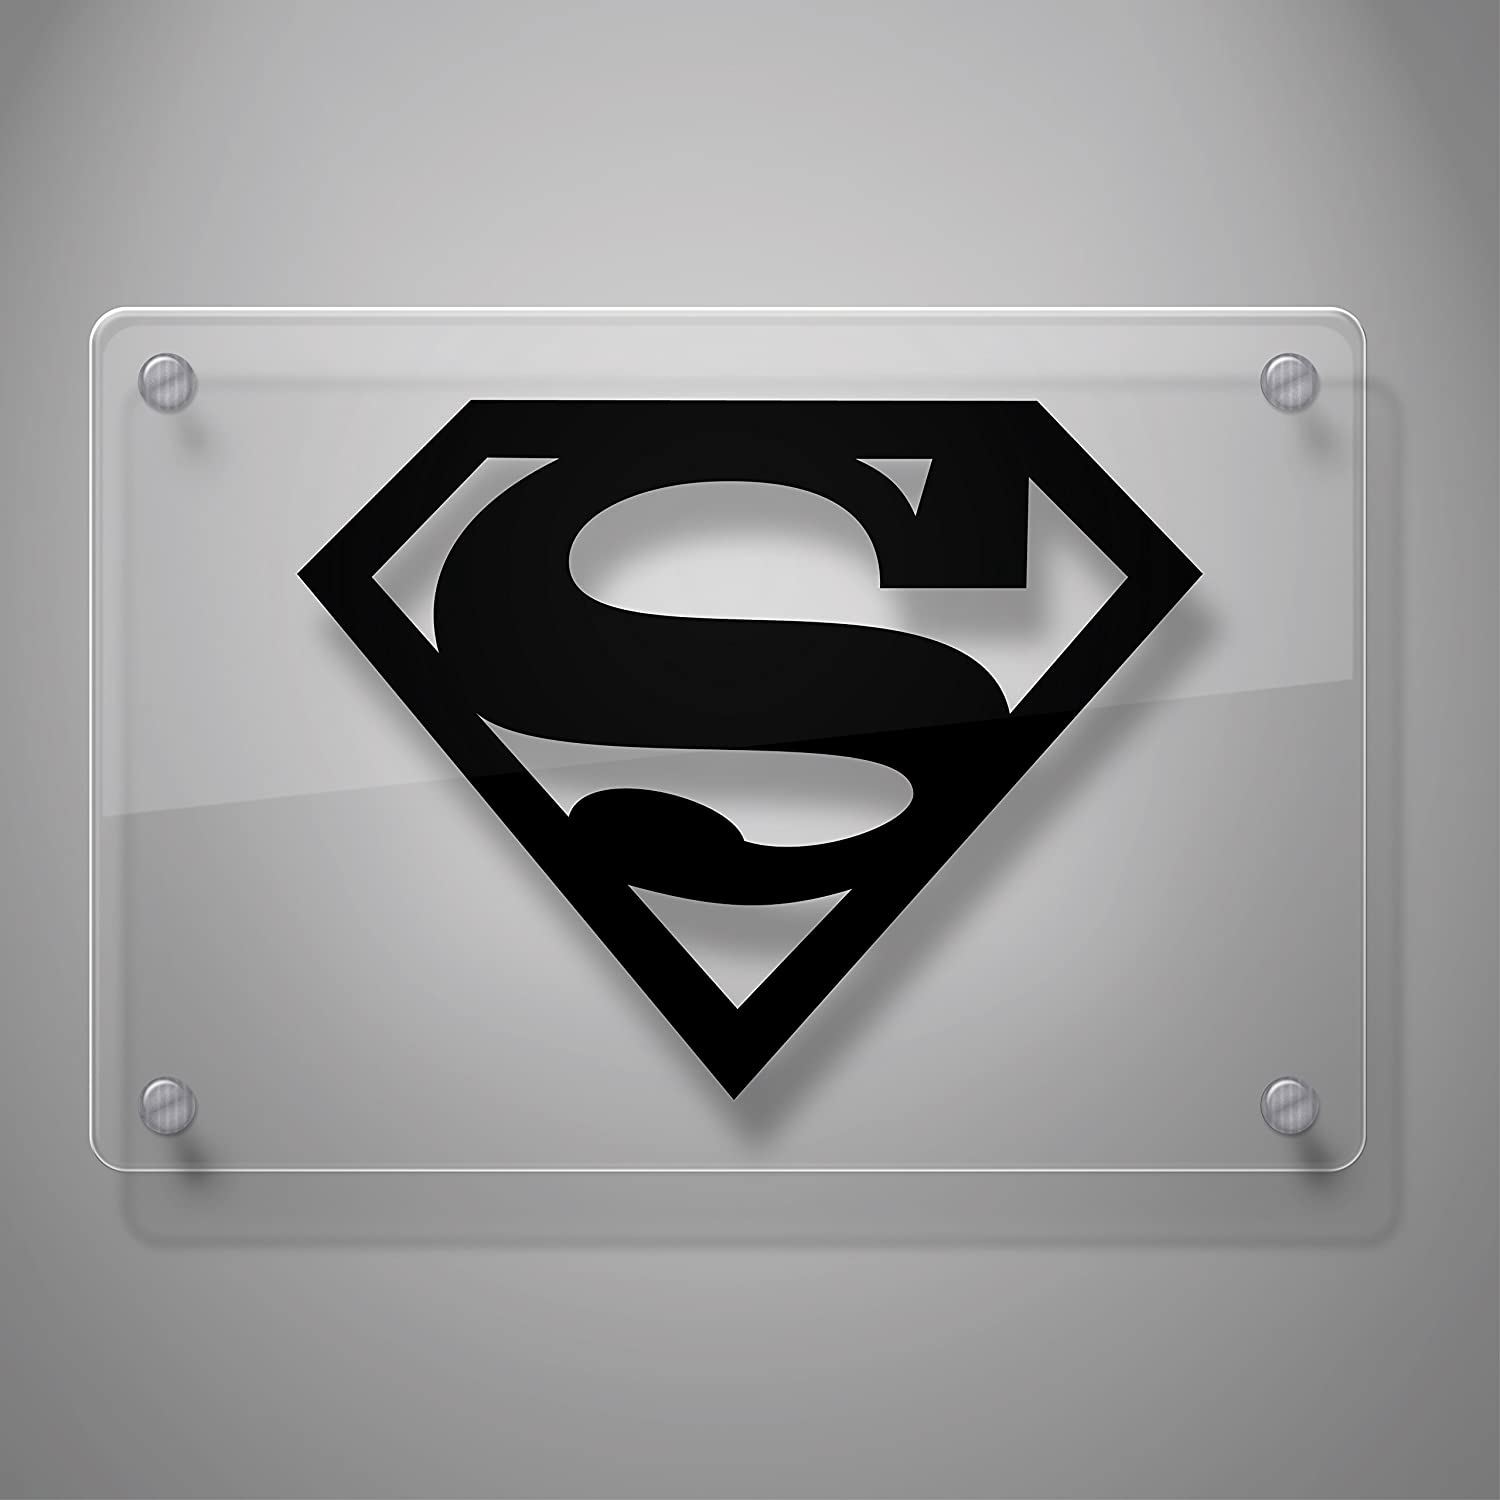 6 x 7.7, Black Laptop and More Laptop and More Yoonek Graphics Superman Decal Sticker for Car Window 6 x 7.7 # 805 # 805